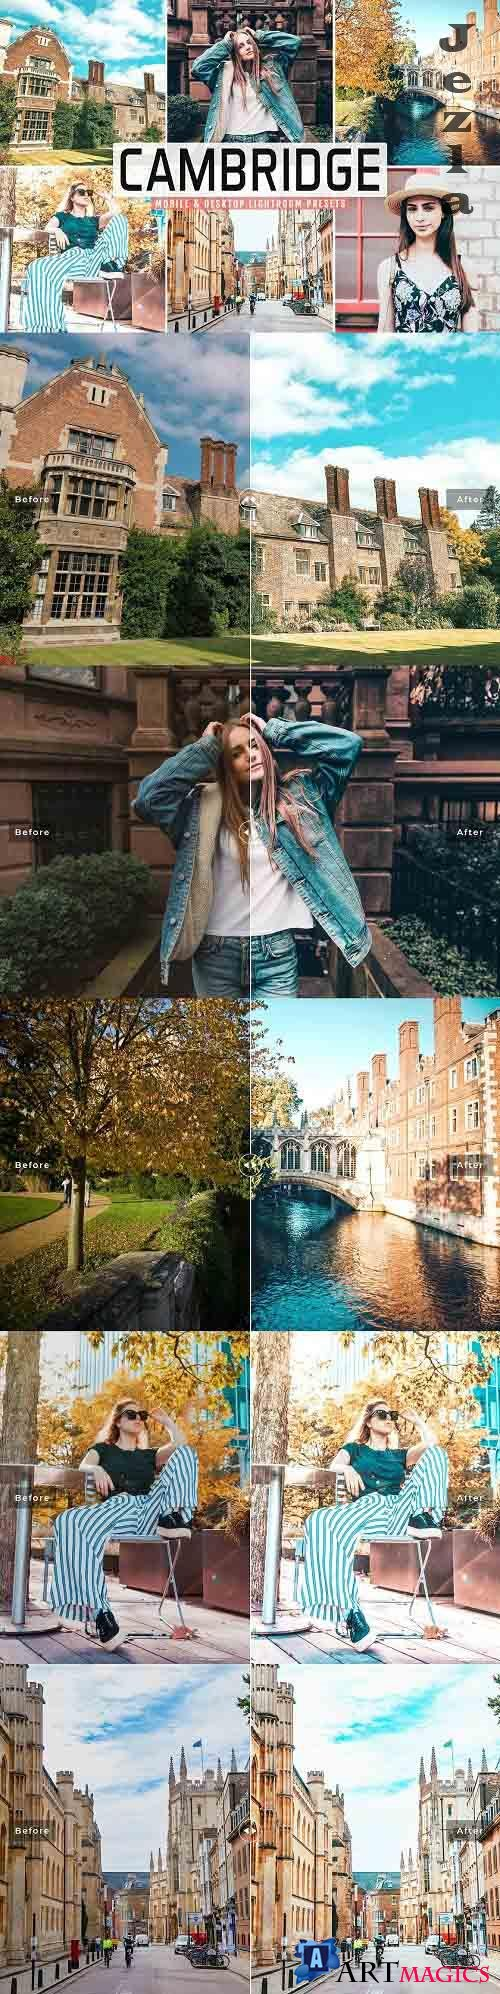 Cambridge Pro Lightroom Presets - 5613912 - Mobile & Desktop